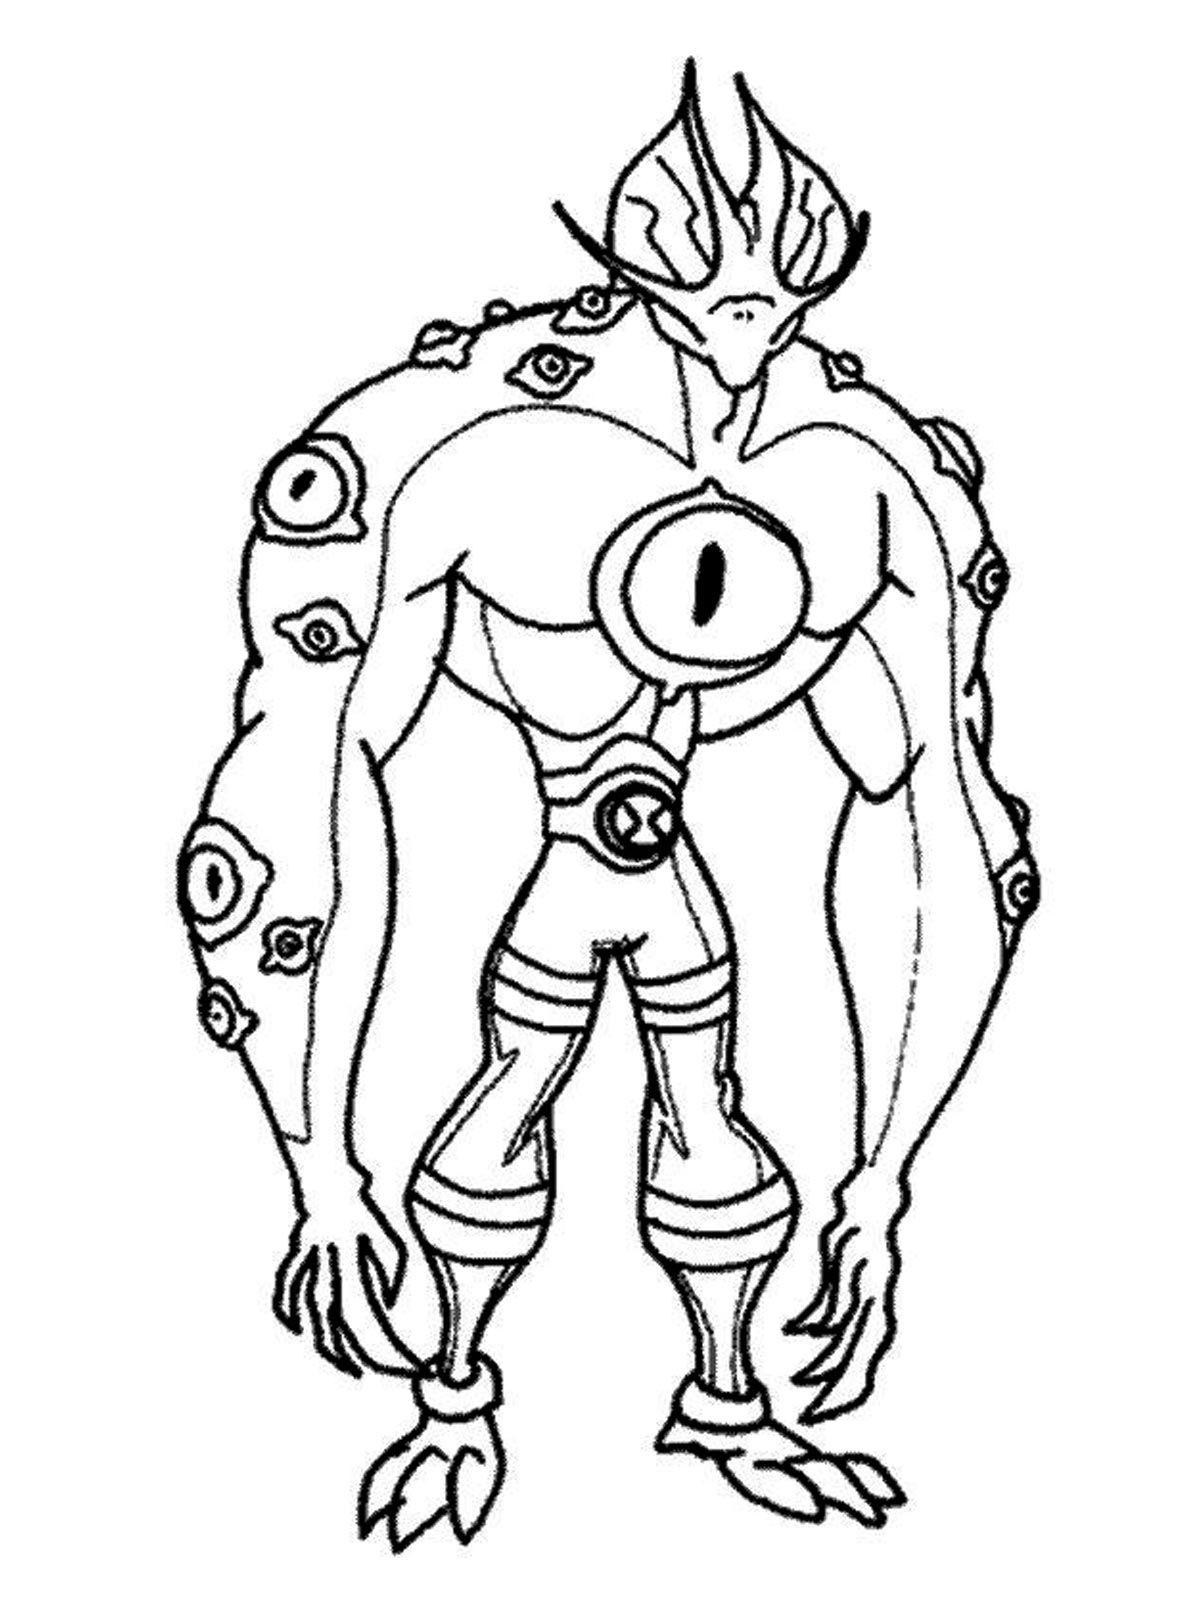 Free Nickelodeon Coloring Pages Ben 10 And